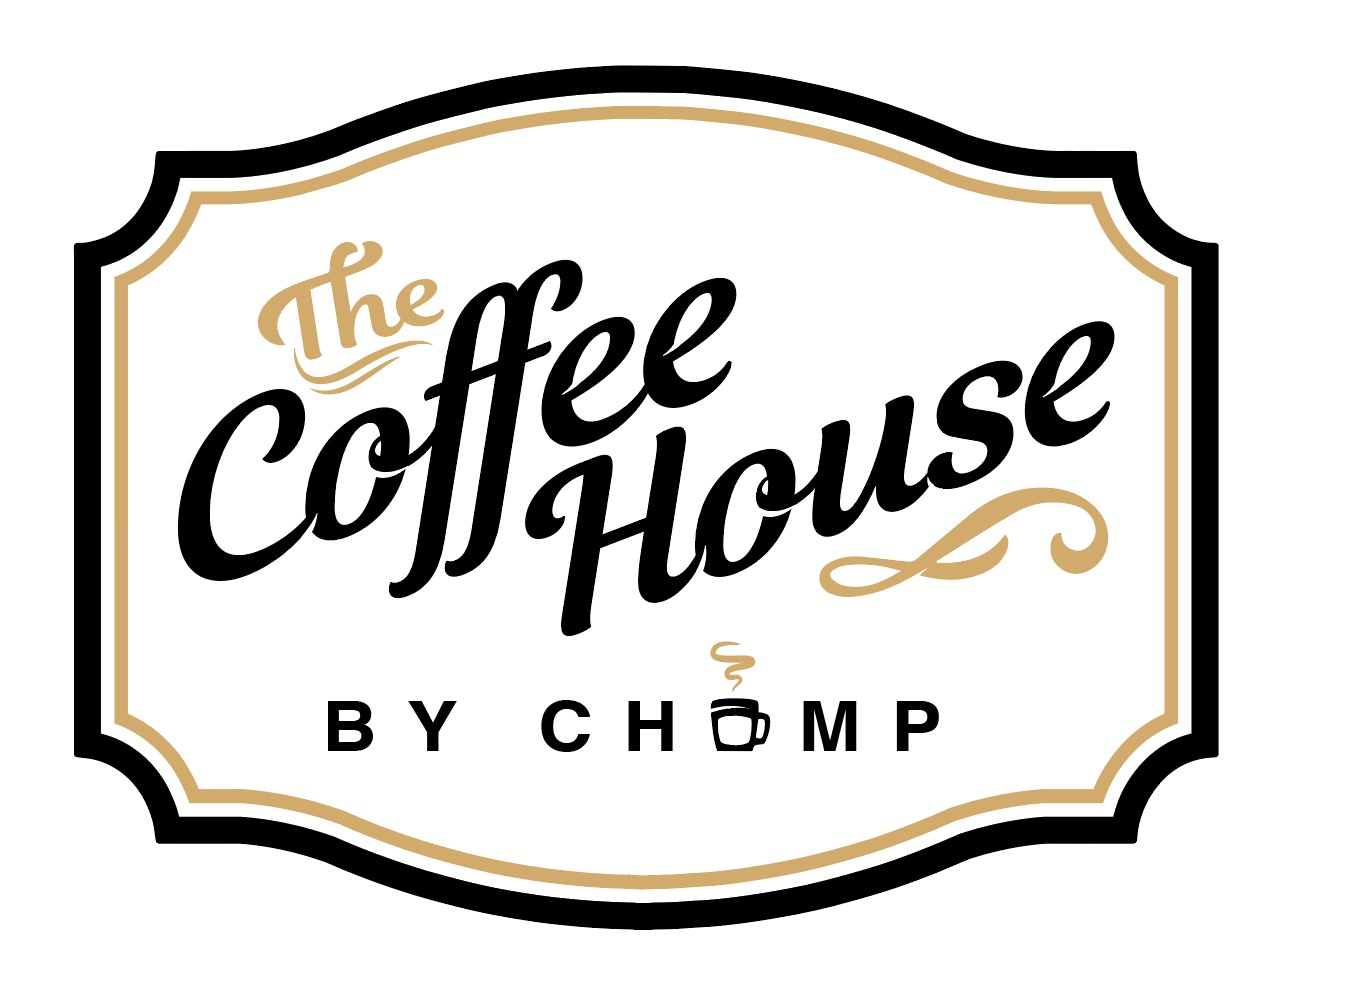 The Coffee House by CHOMP logo